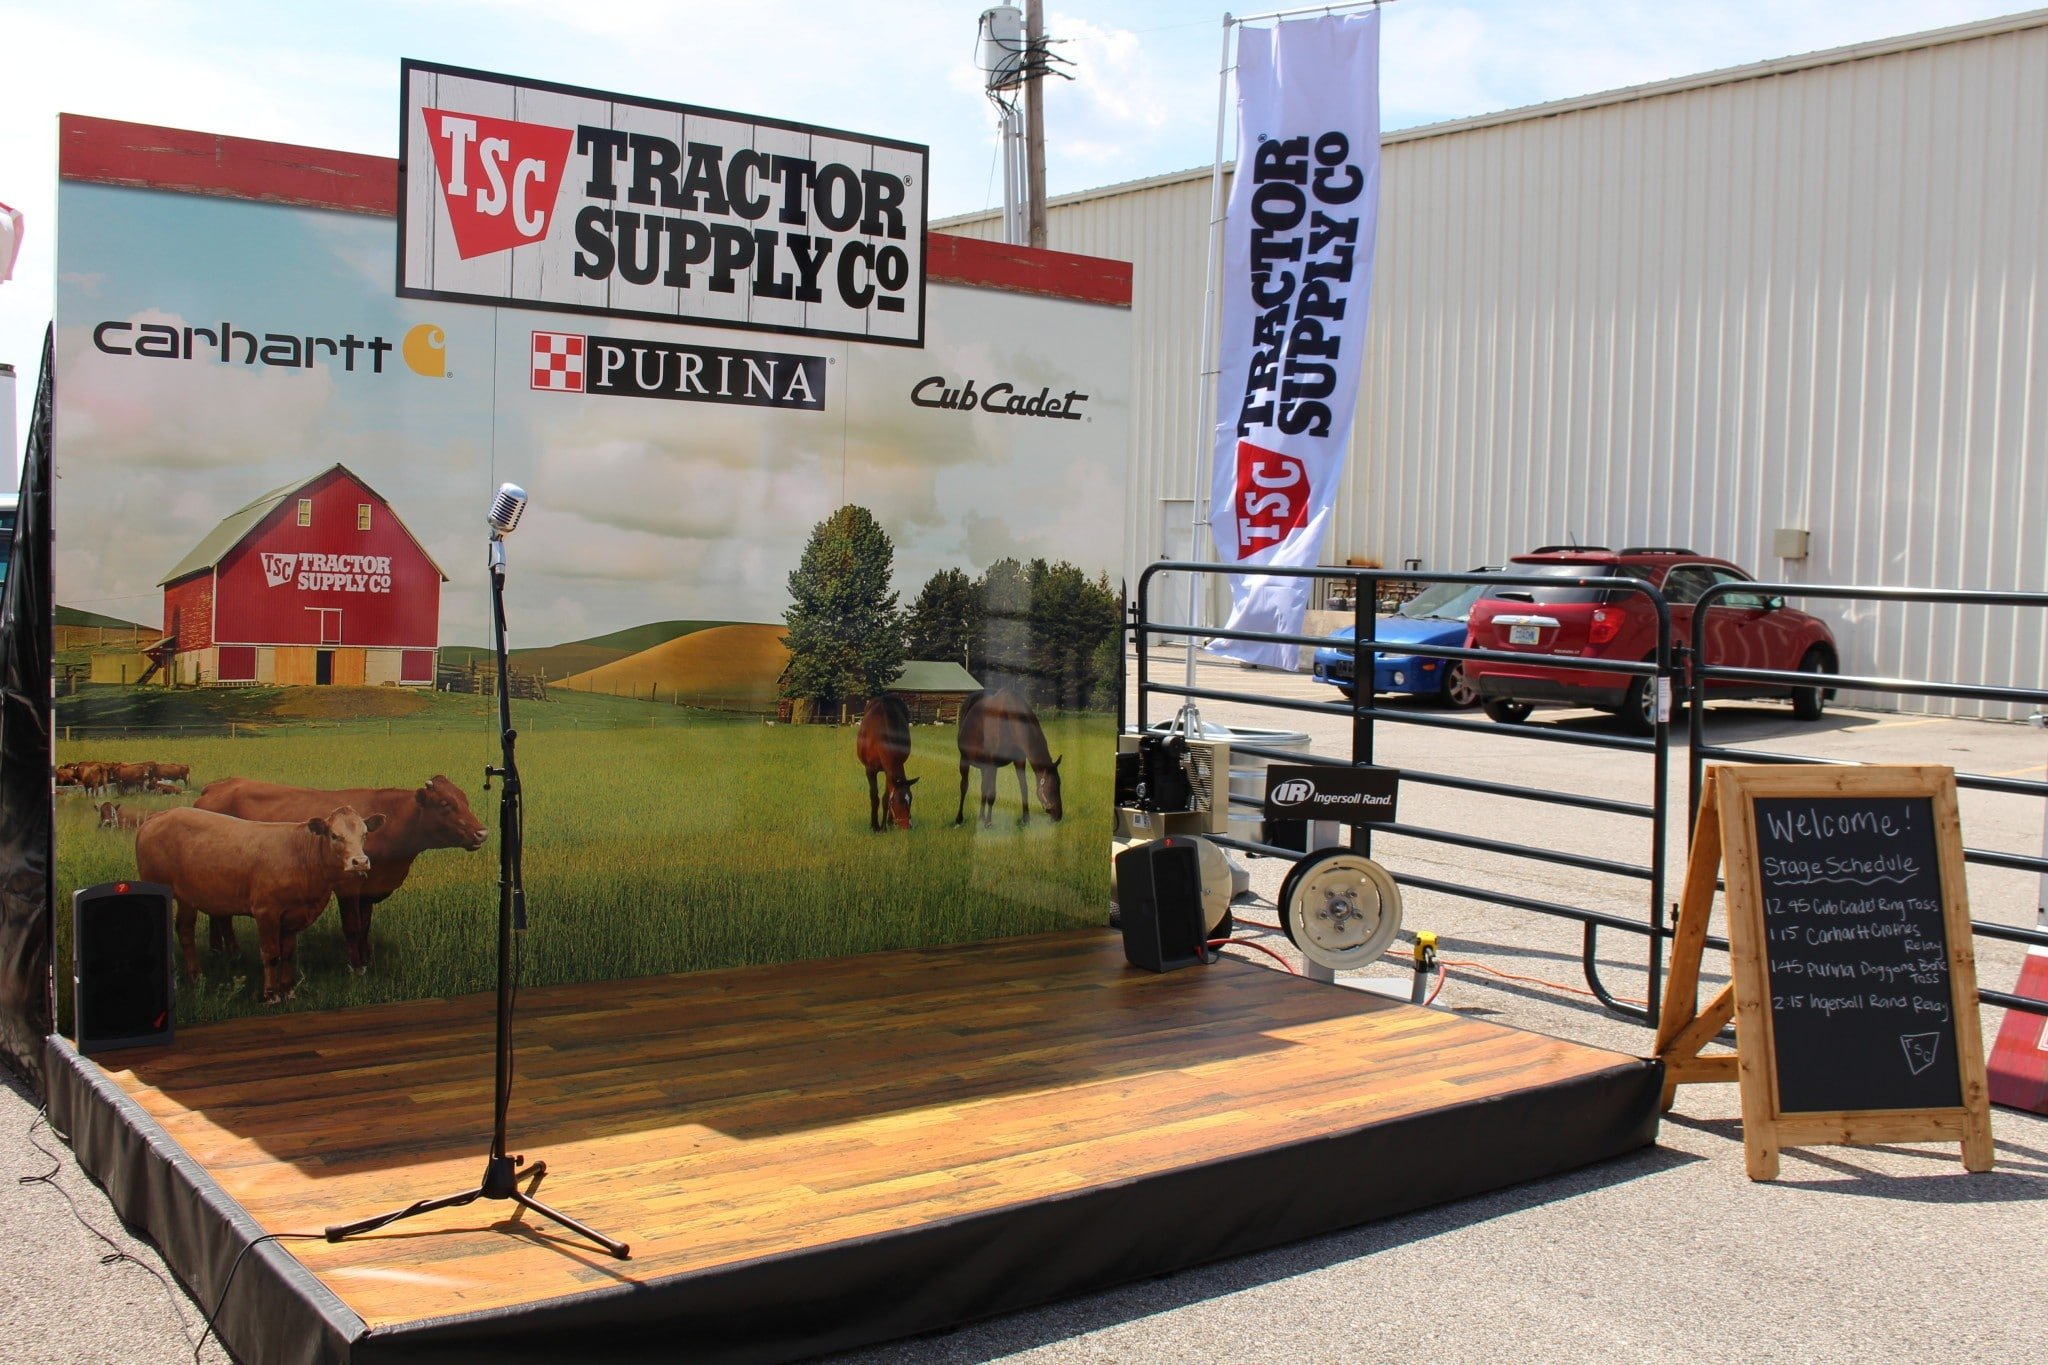 Tsc Tractor Supply : Tractor supply company follow us to the fair pro motion